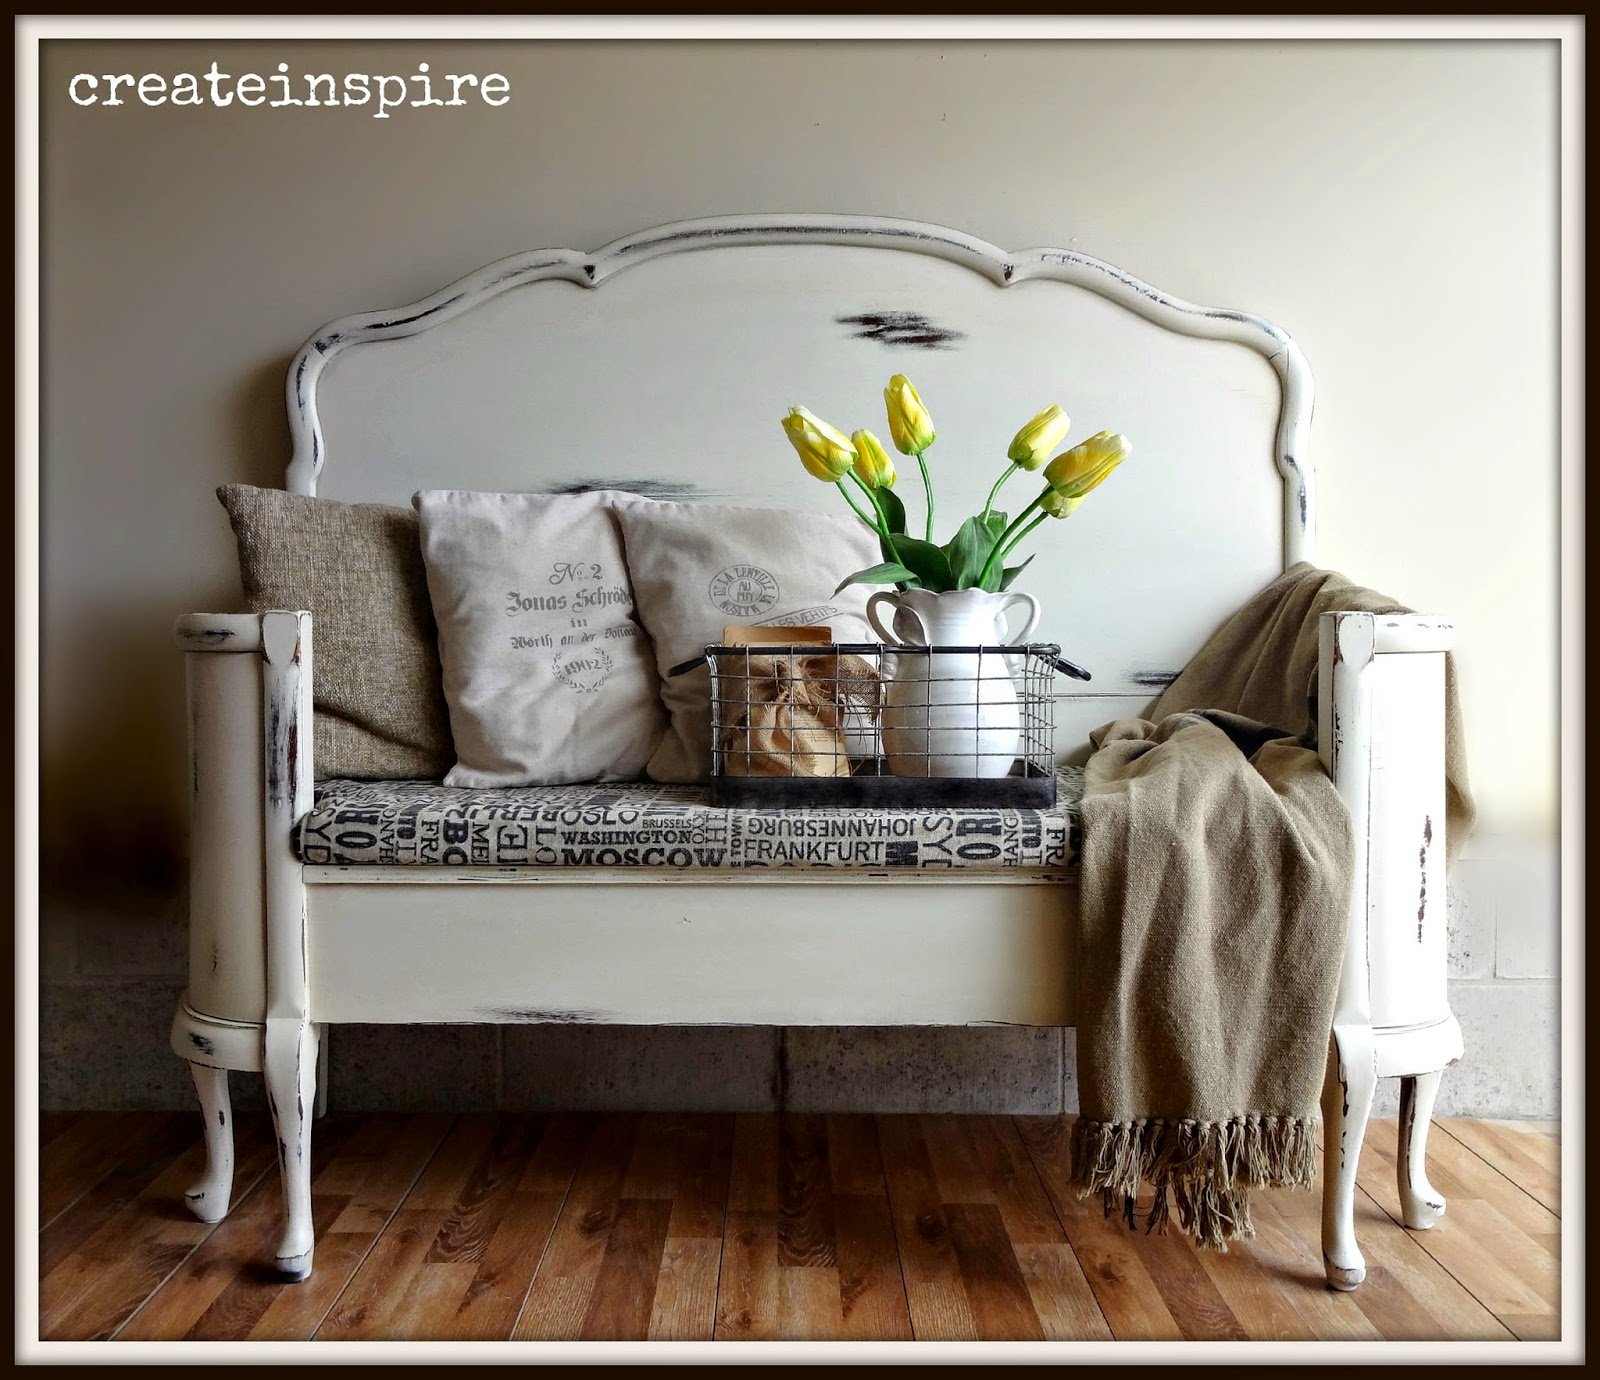 Antique Headboard Bench: {createinspire}: Antique Headboard To Bench In Antique White